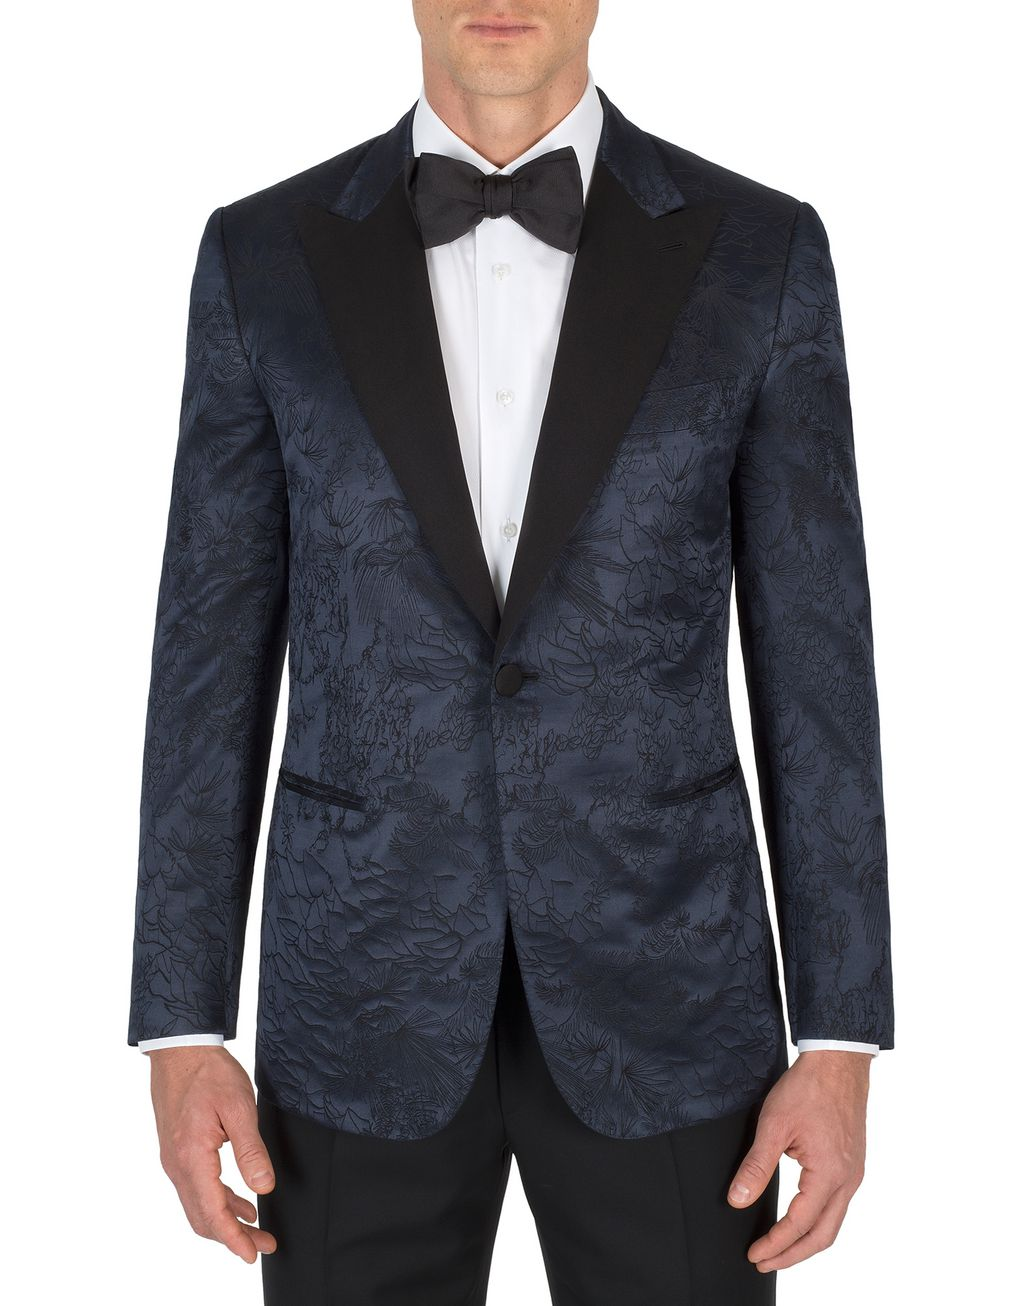 BRIONI Smoking Barberini bleu marine  Smoking Homme r